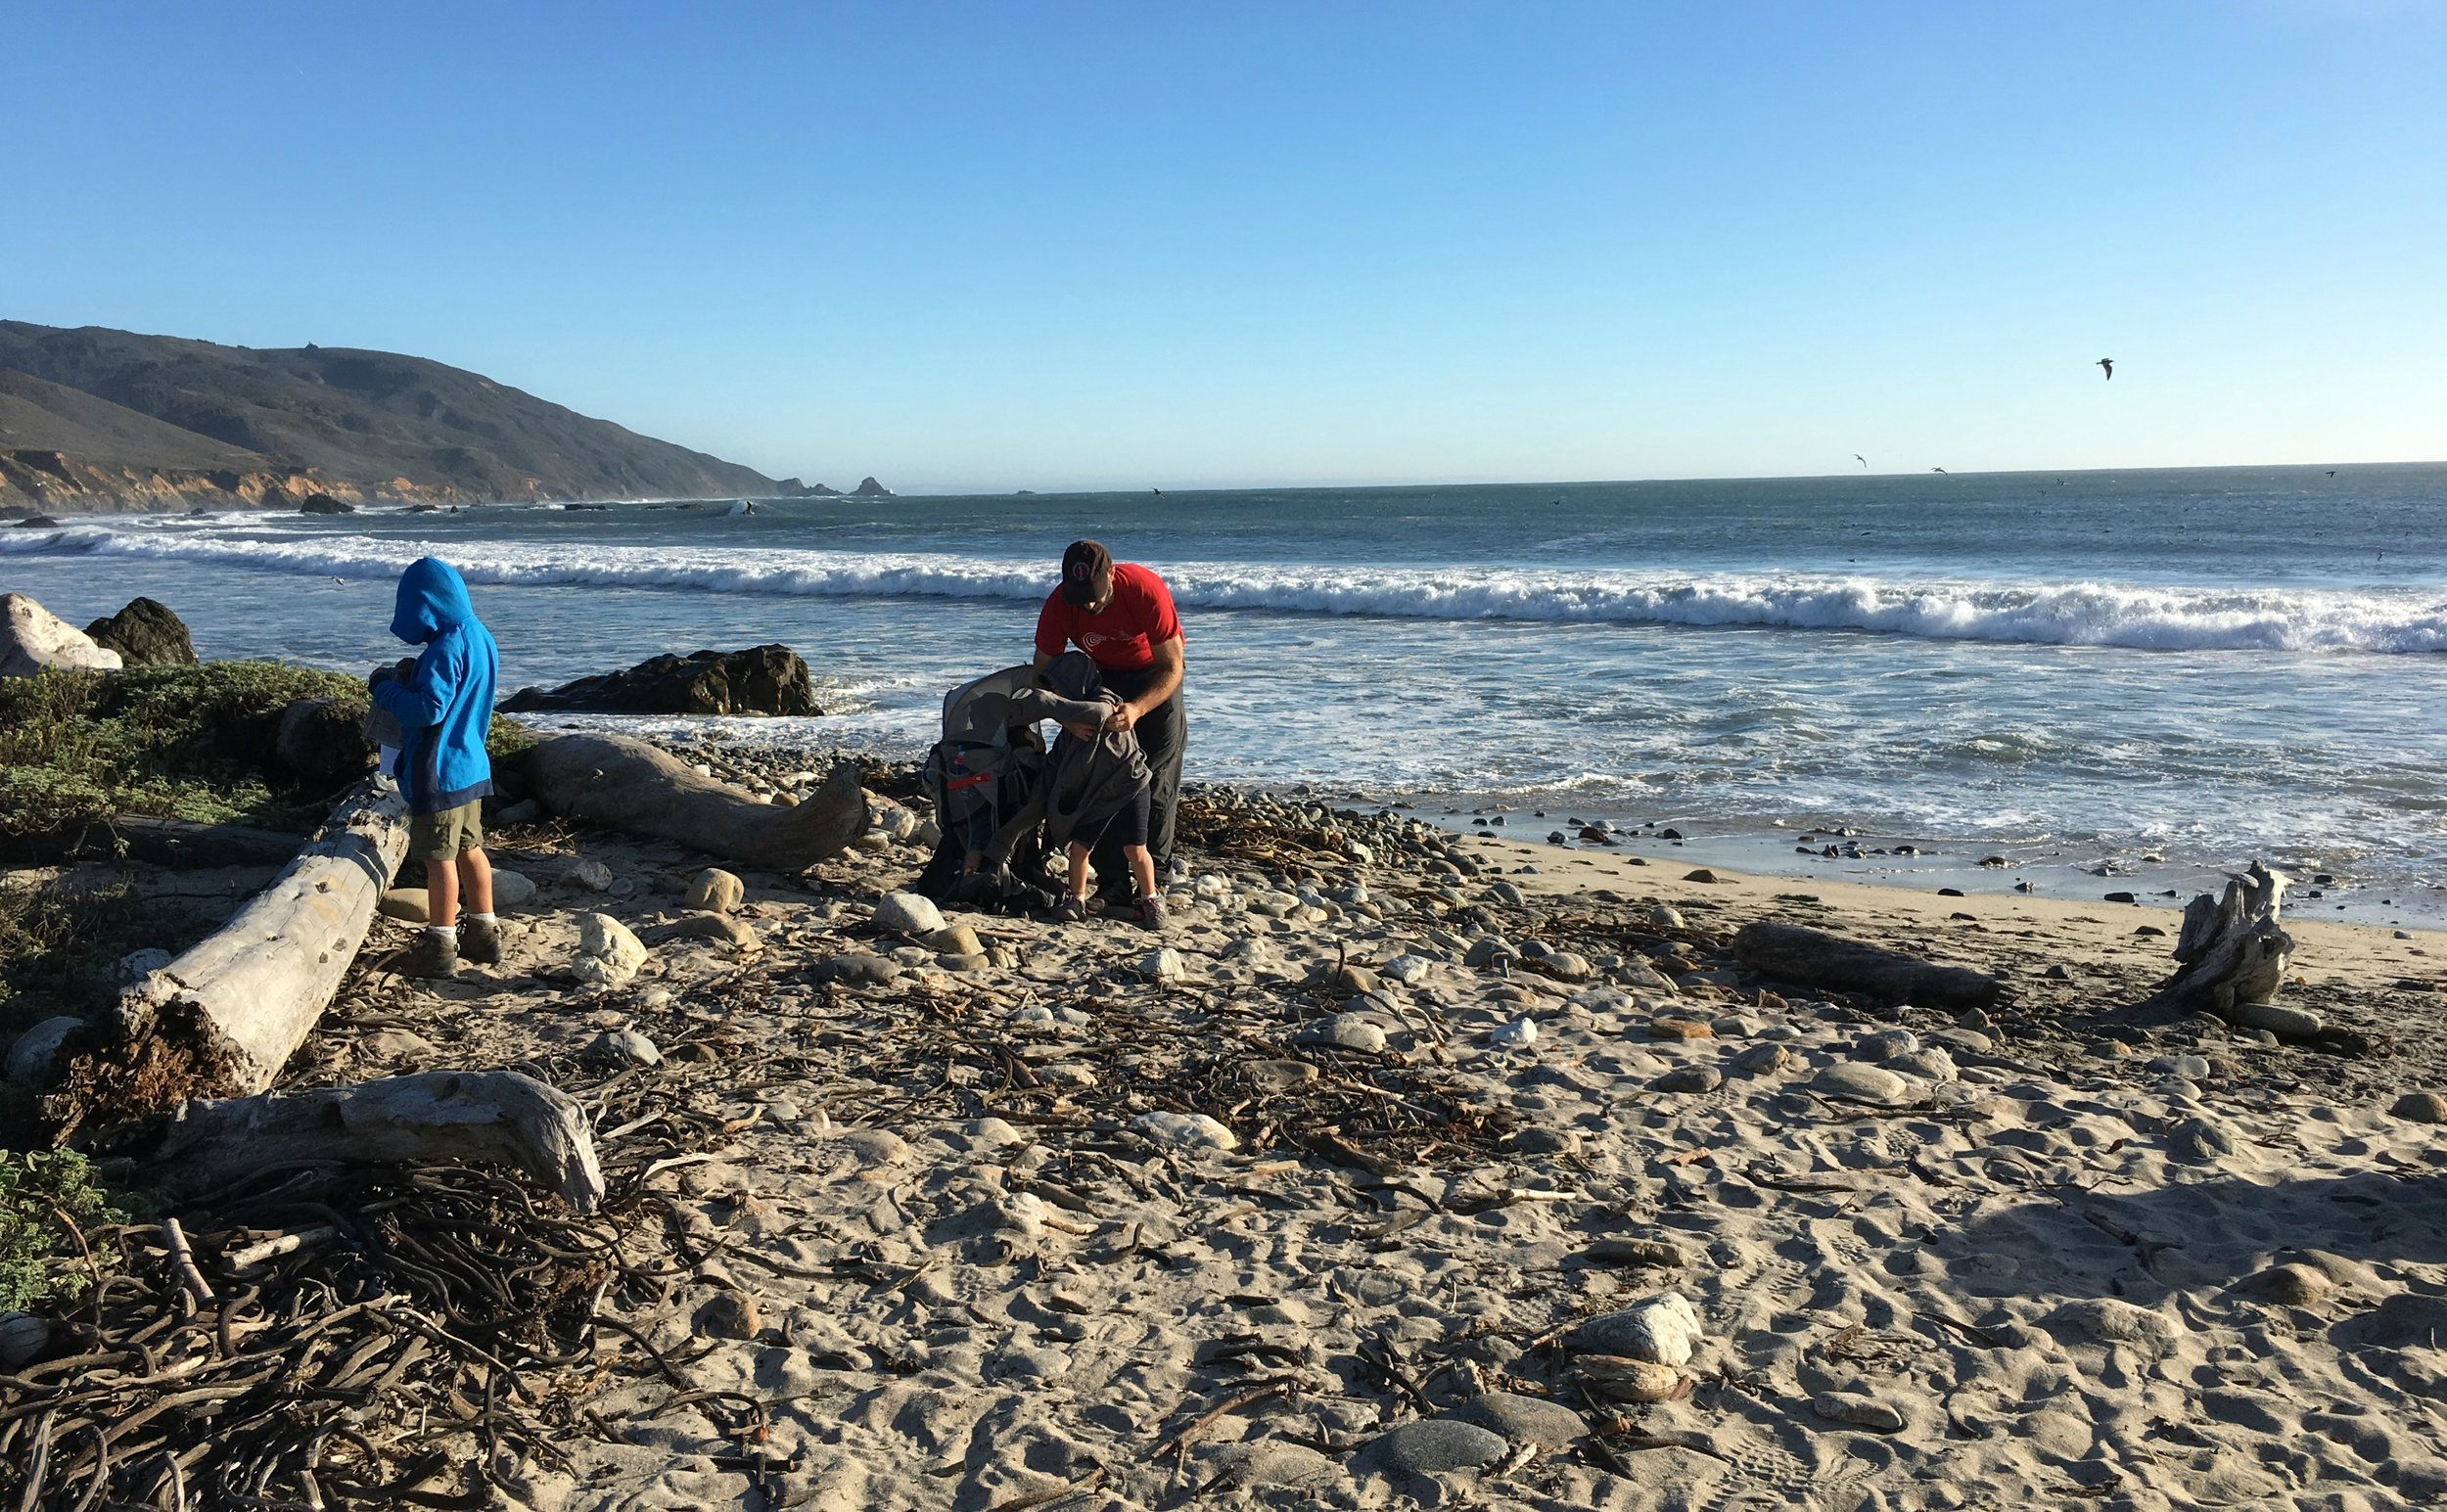 Beach day in the middle of Fall at Andrew Molera State Park - Bring a sweater!